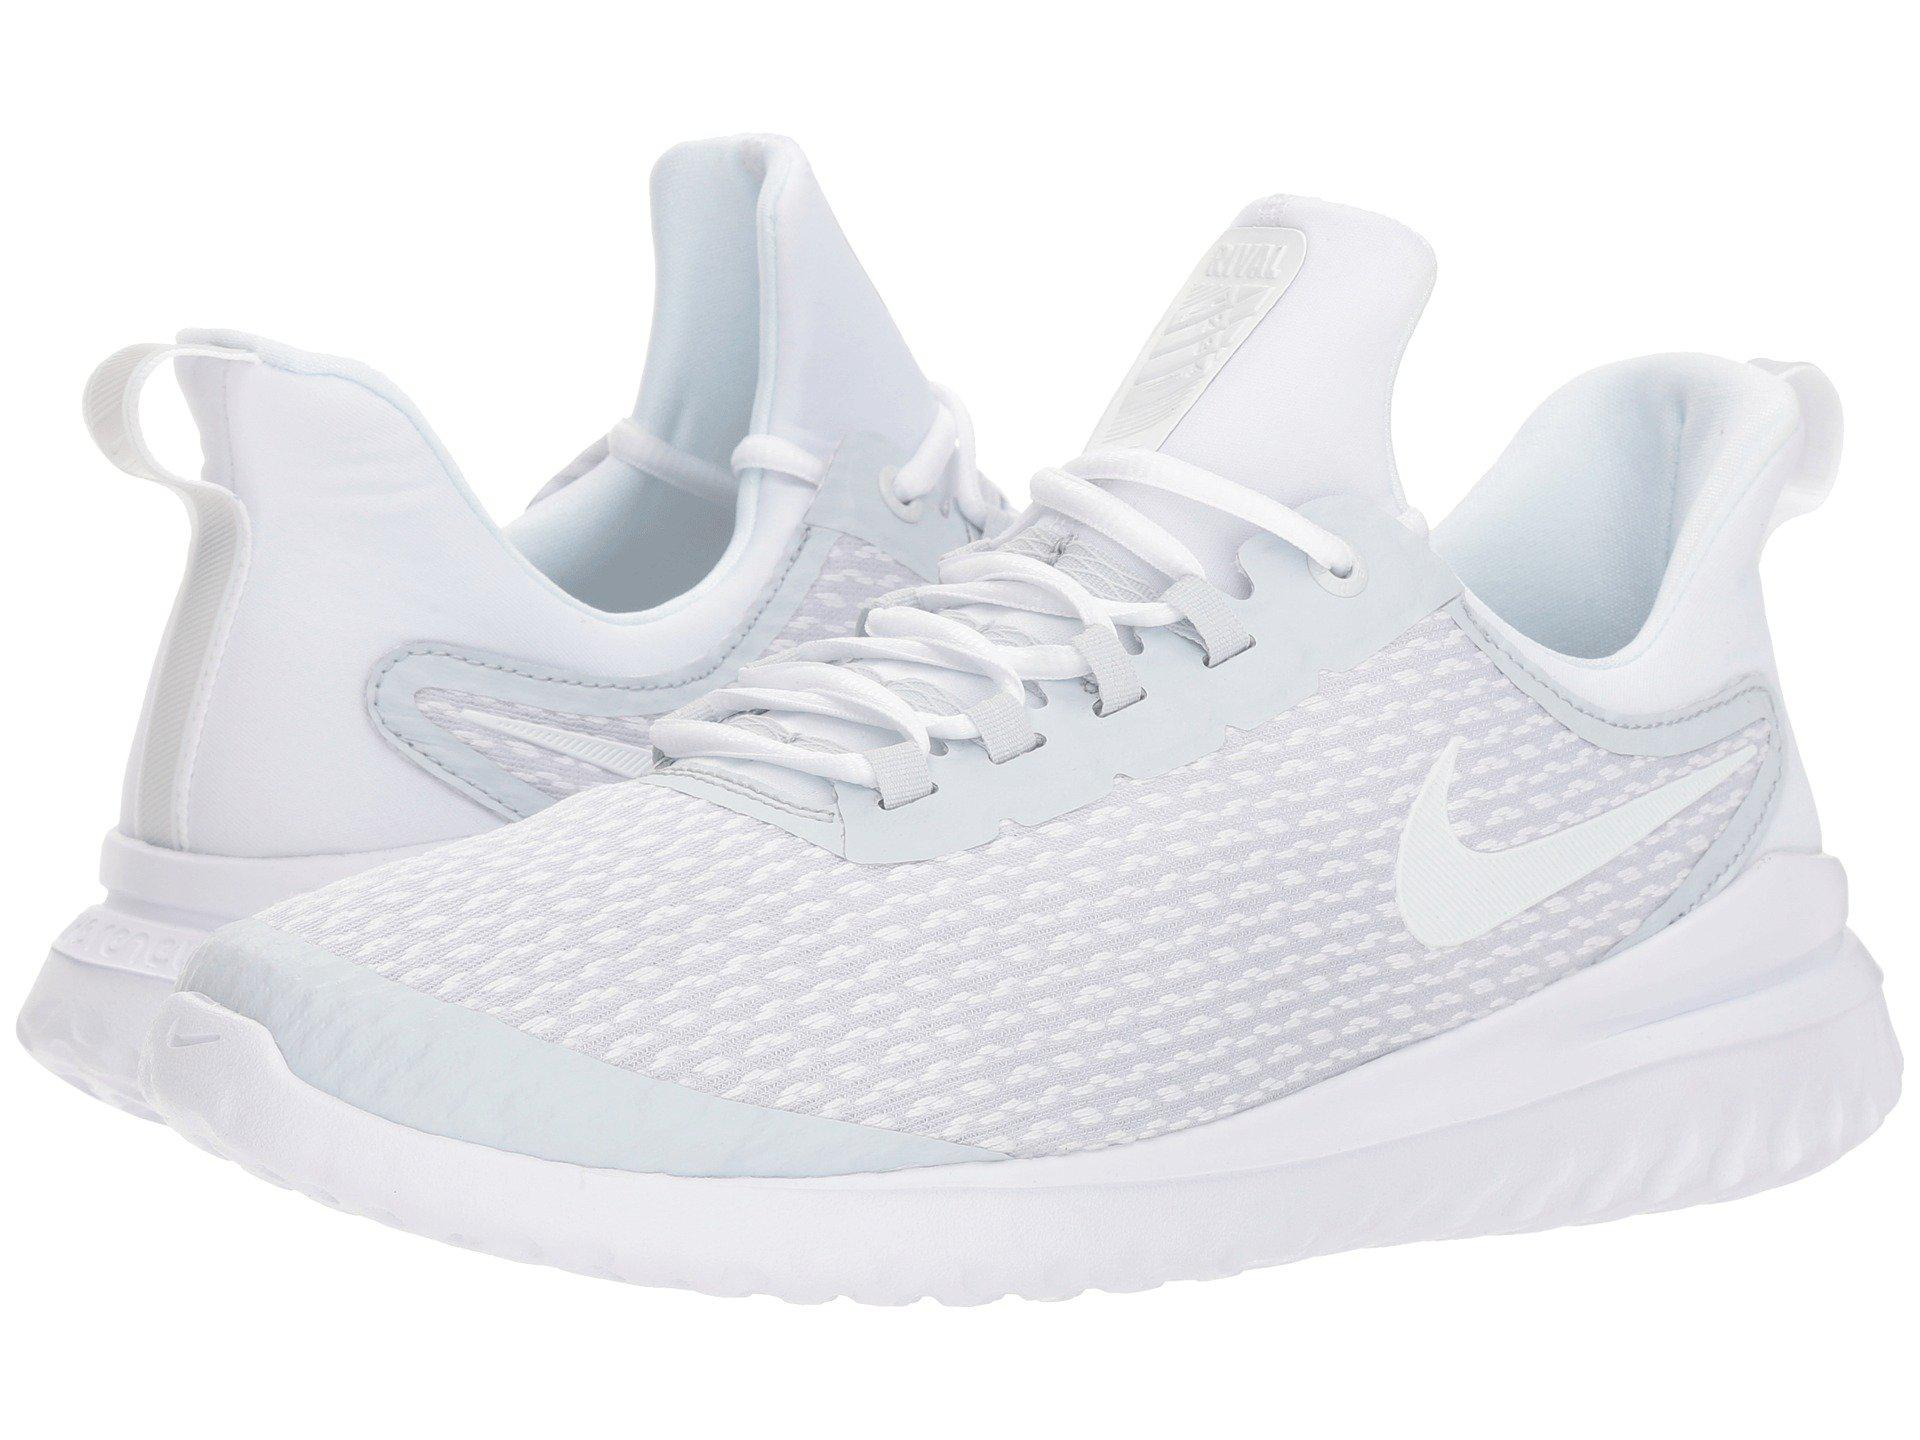 7a587f796f4 Lyst - Nike Renew Rival in White for Men